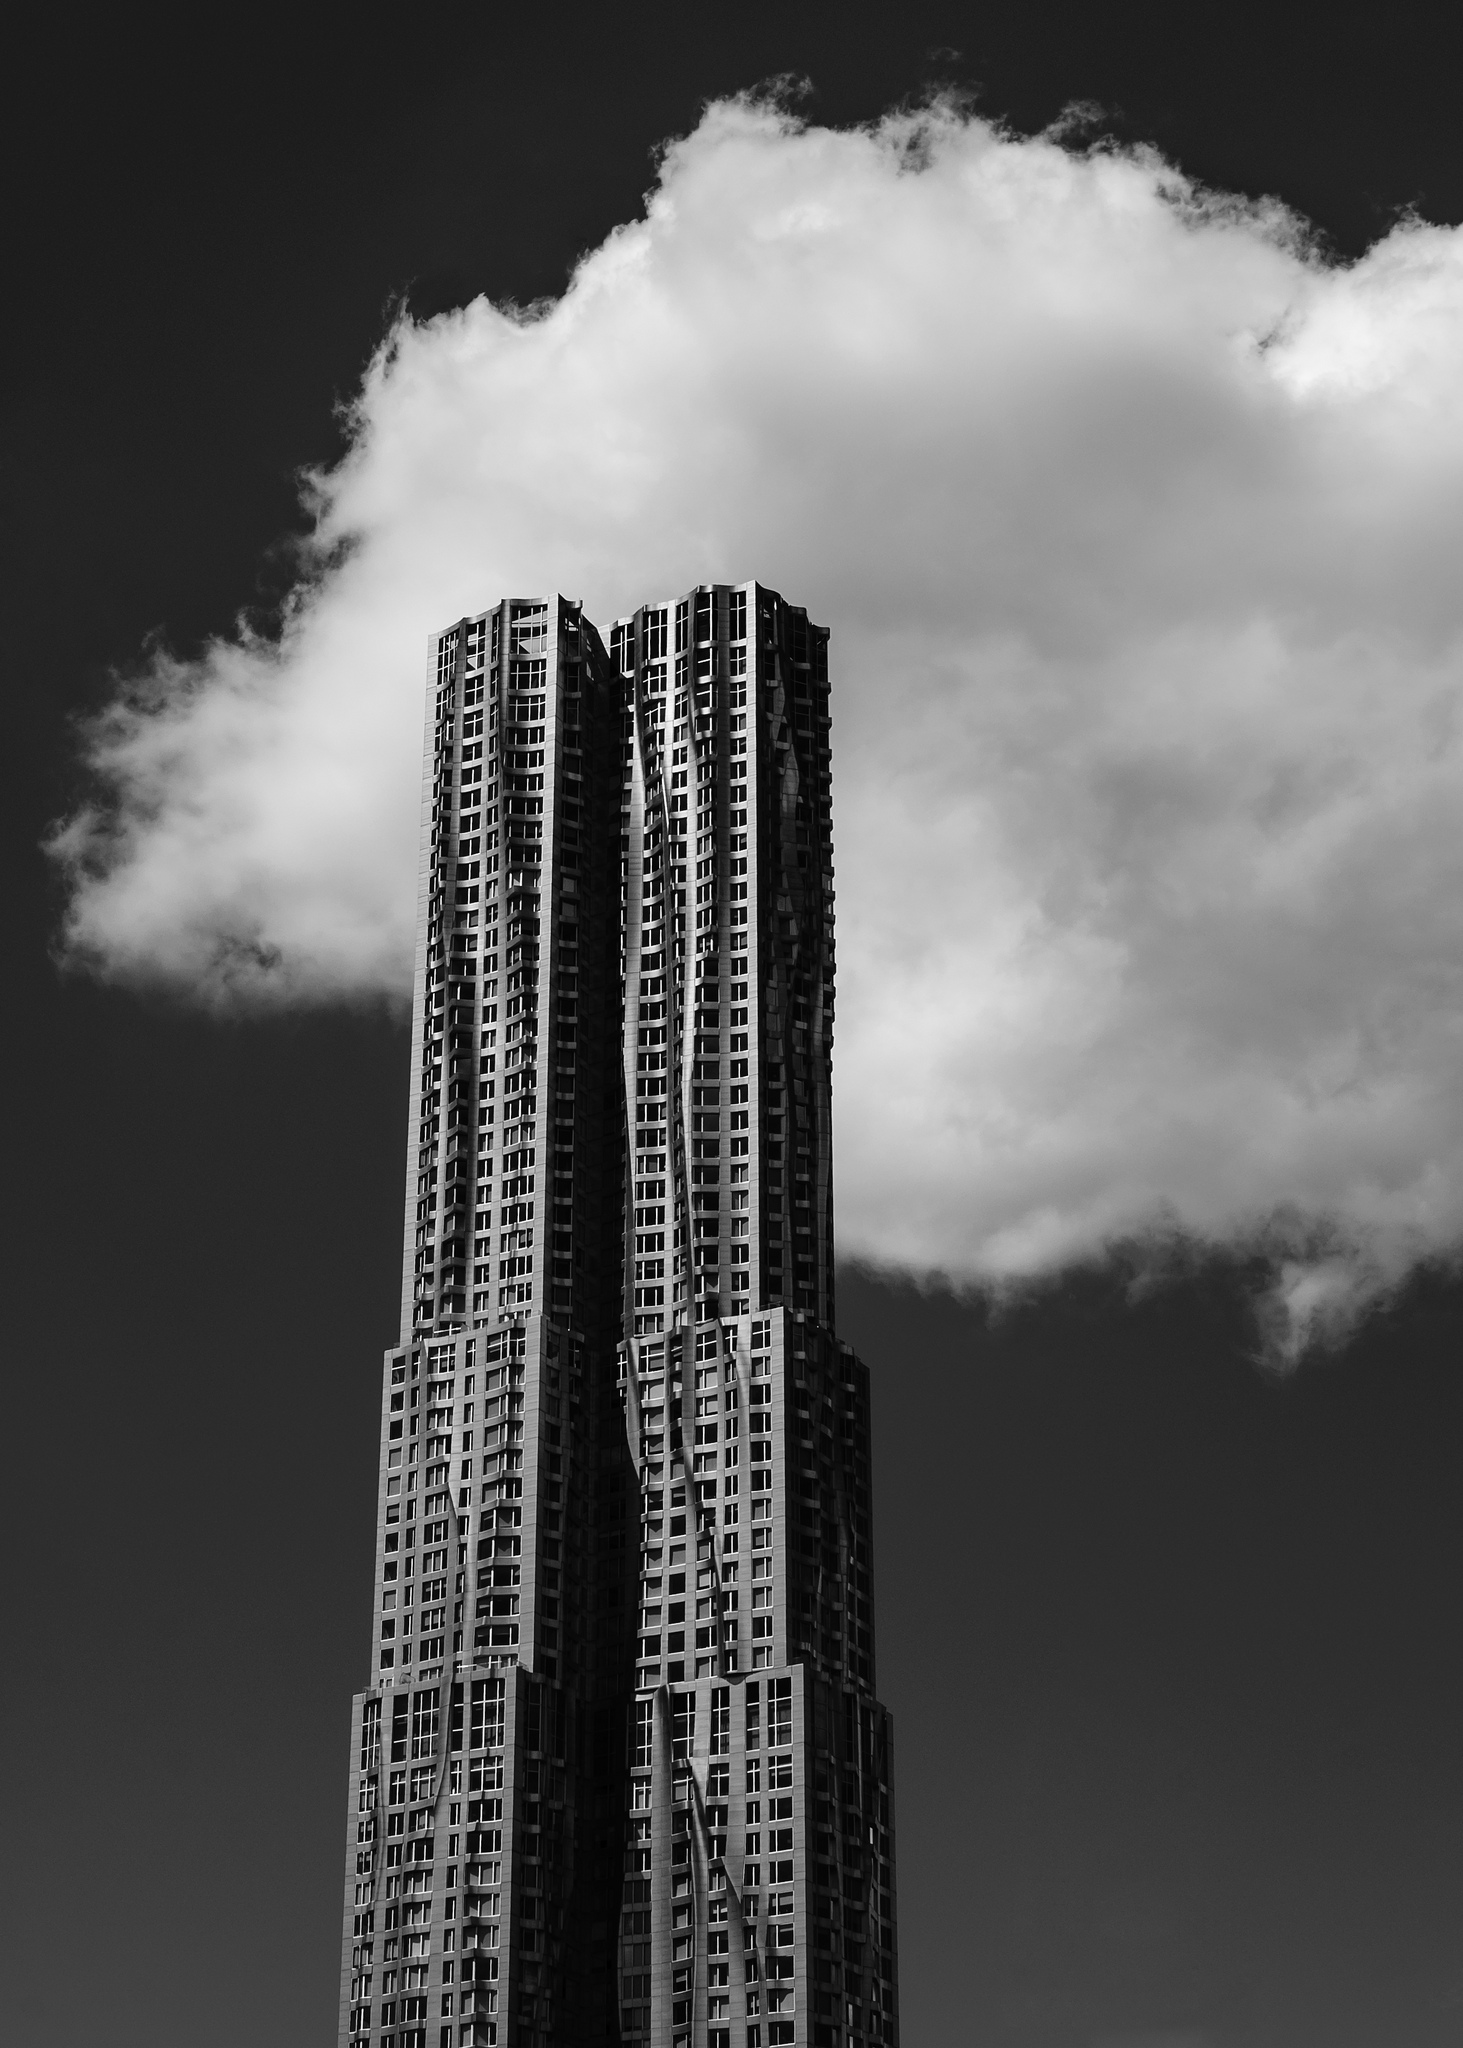 Colt/Gehry